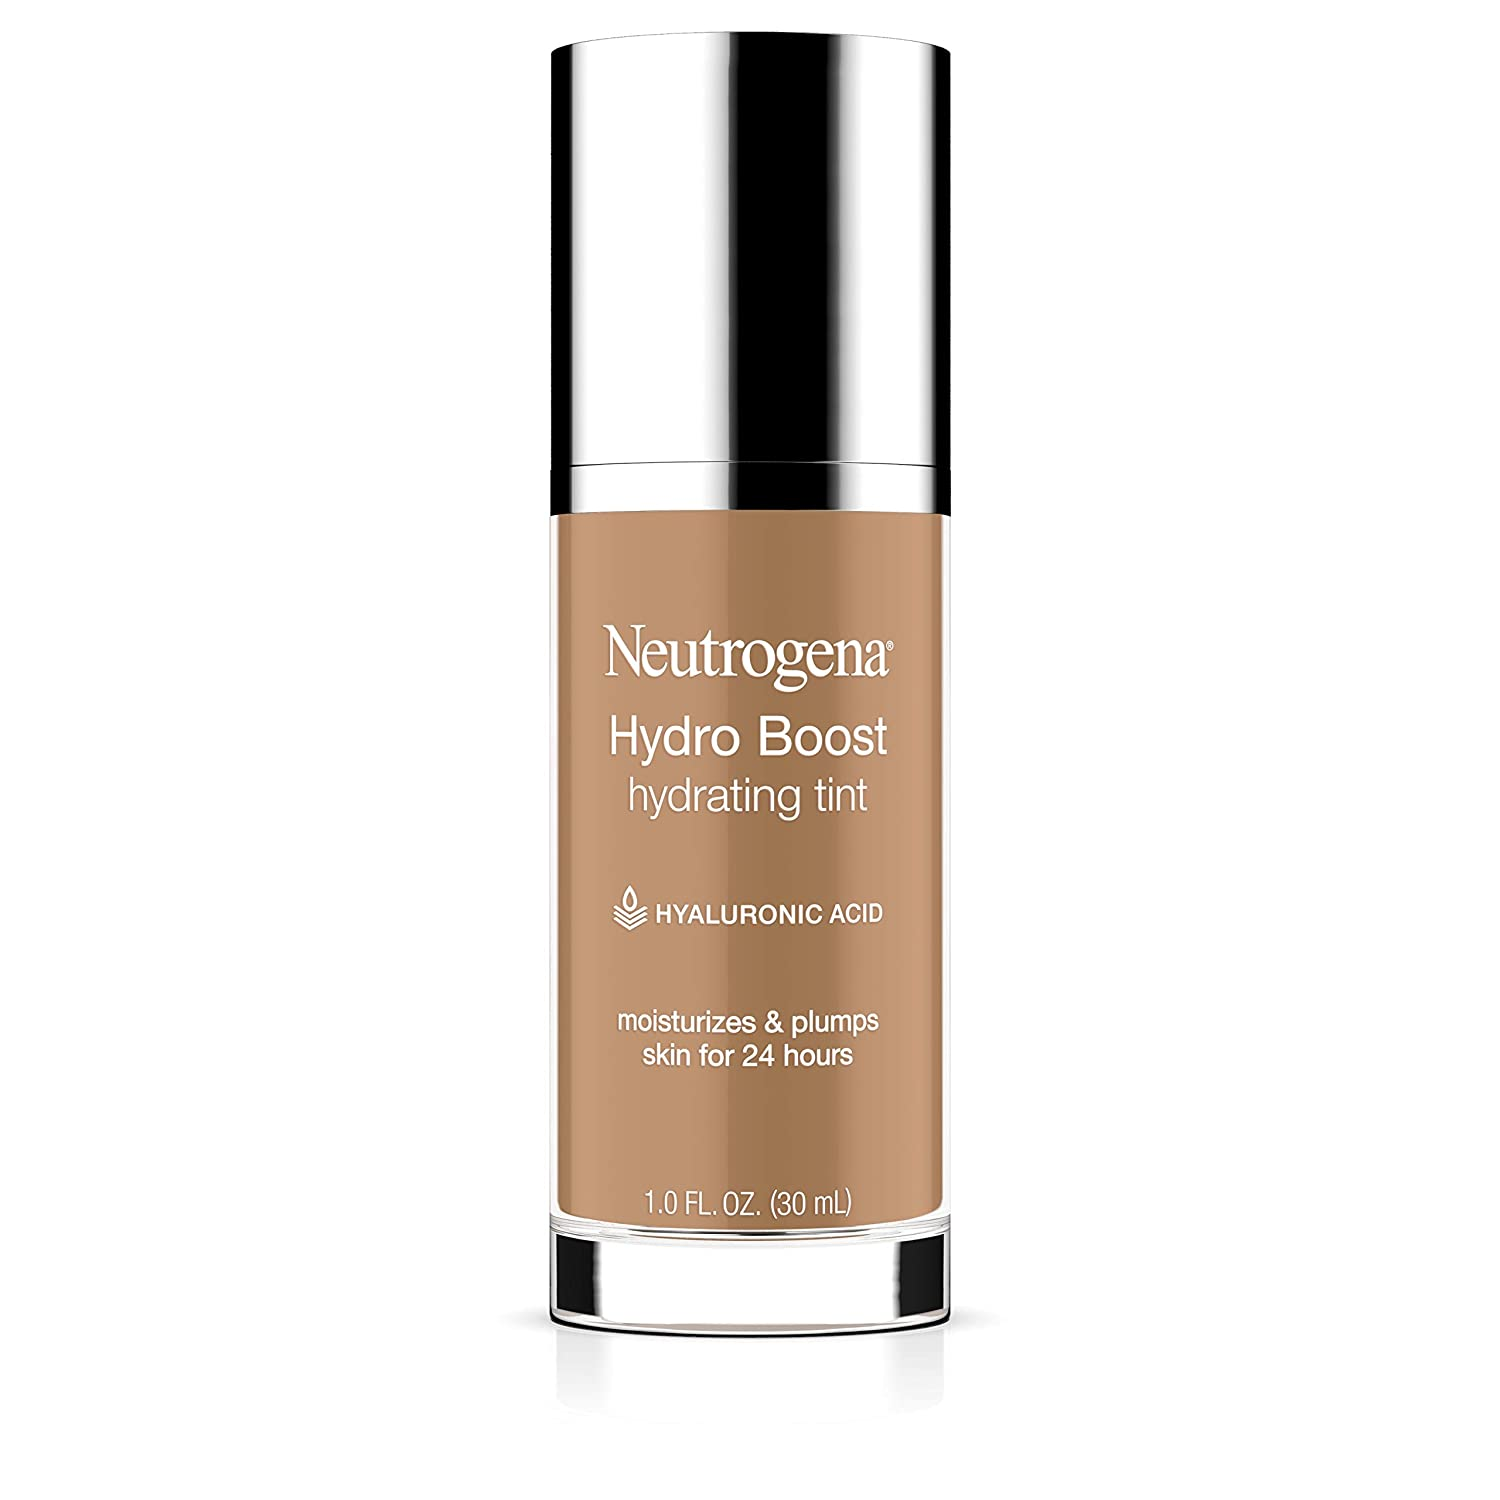 Neutrogena Hydro Boost Hydrating Tint with Hyaluronic Acid, Lightweight Water Gel Formula, Moisturizing, Oil-Free & Non-Comedogenic Liquid Foundation Makeup, 105 Caramel Color 1.0 fl. oz